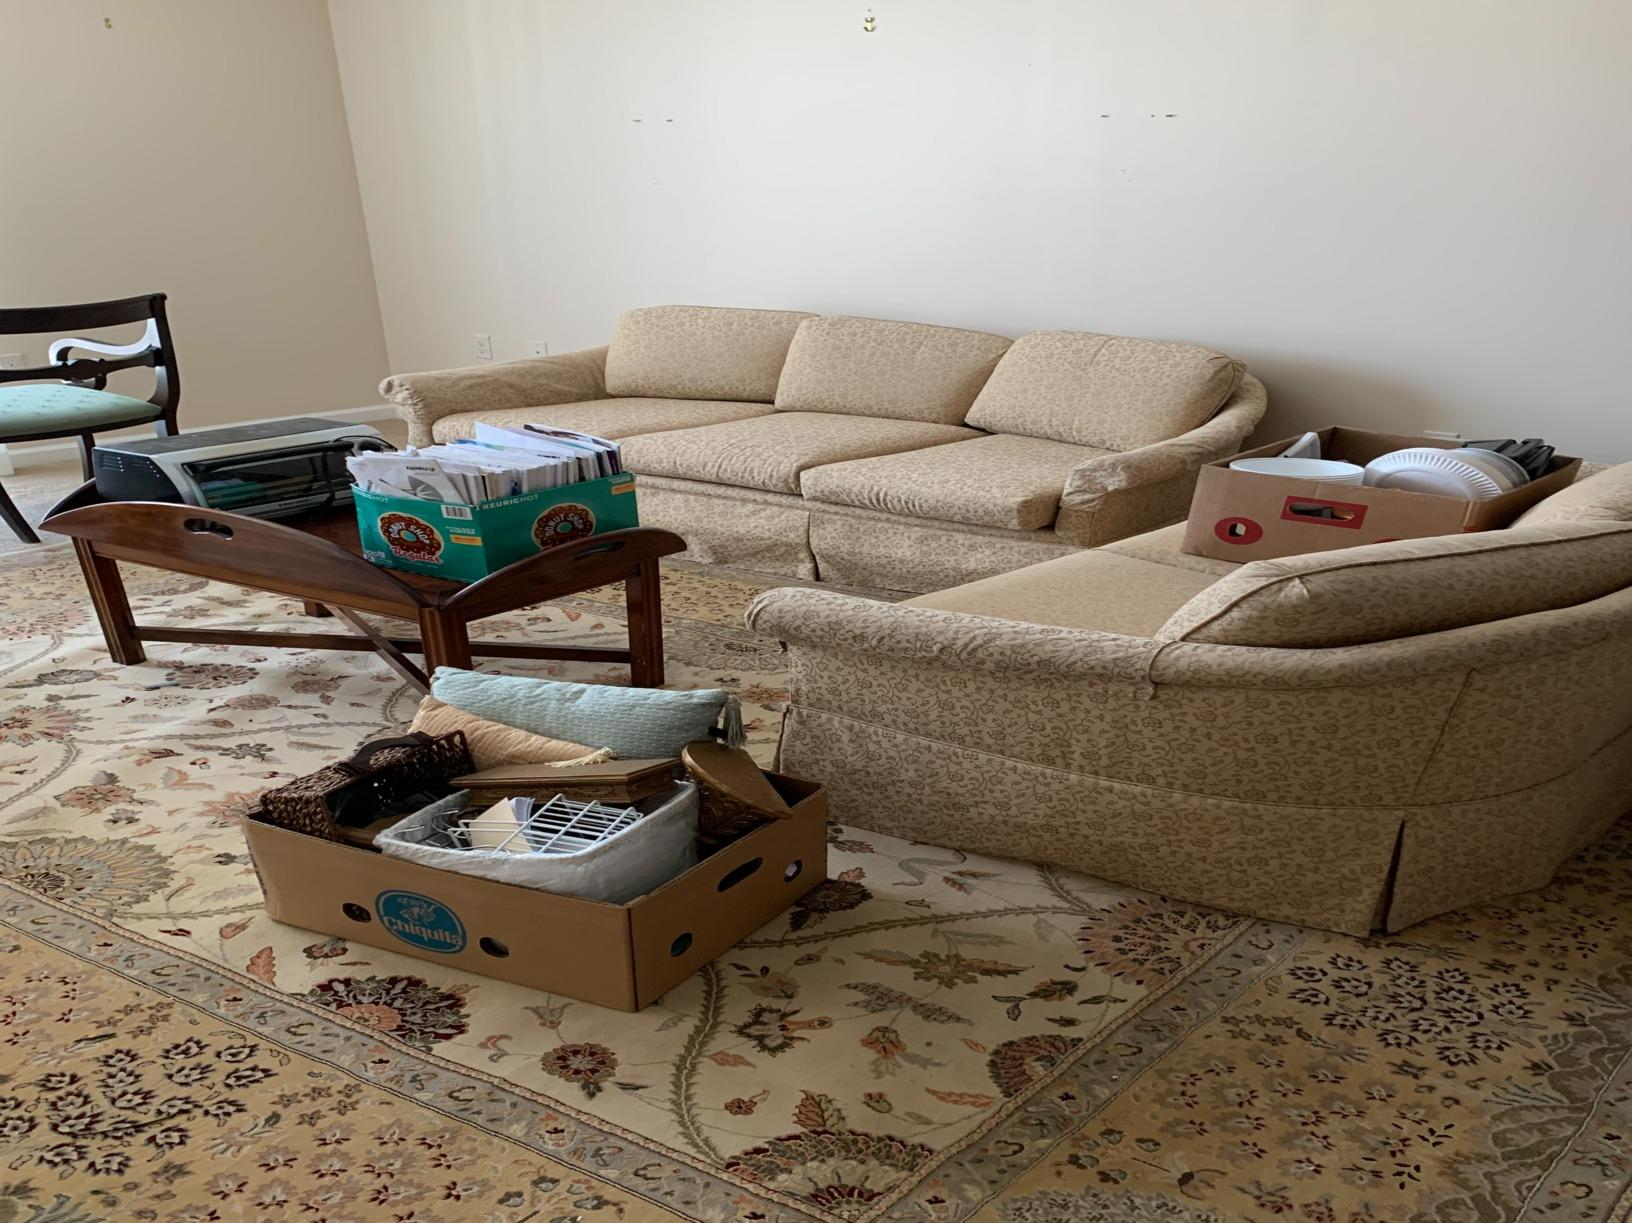 Apartment cleanout in Canton, MA - Before Photo